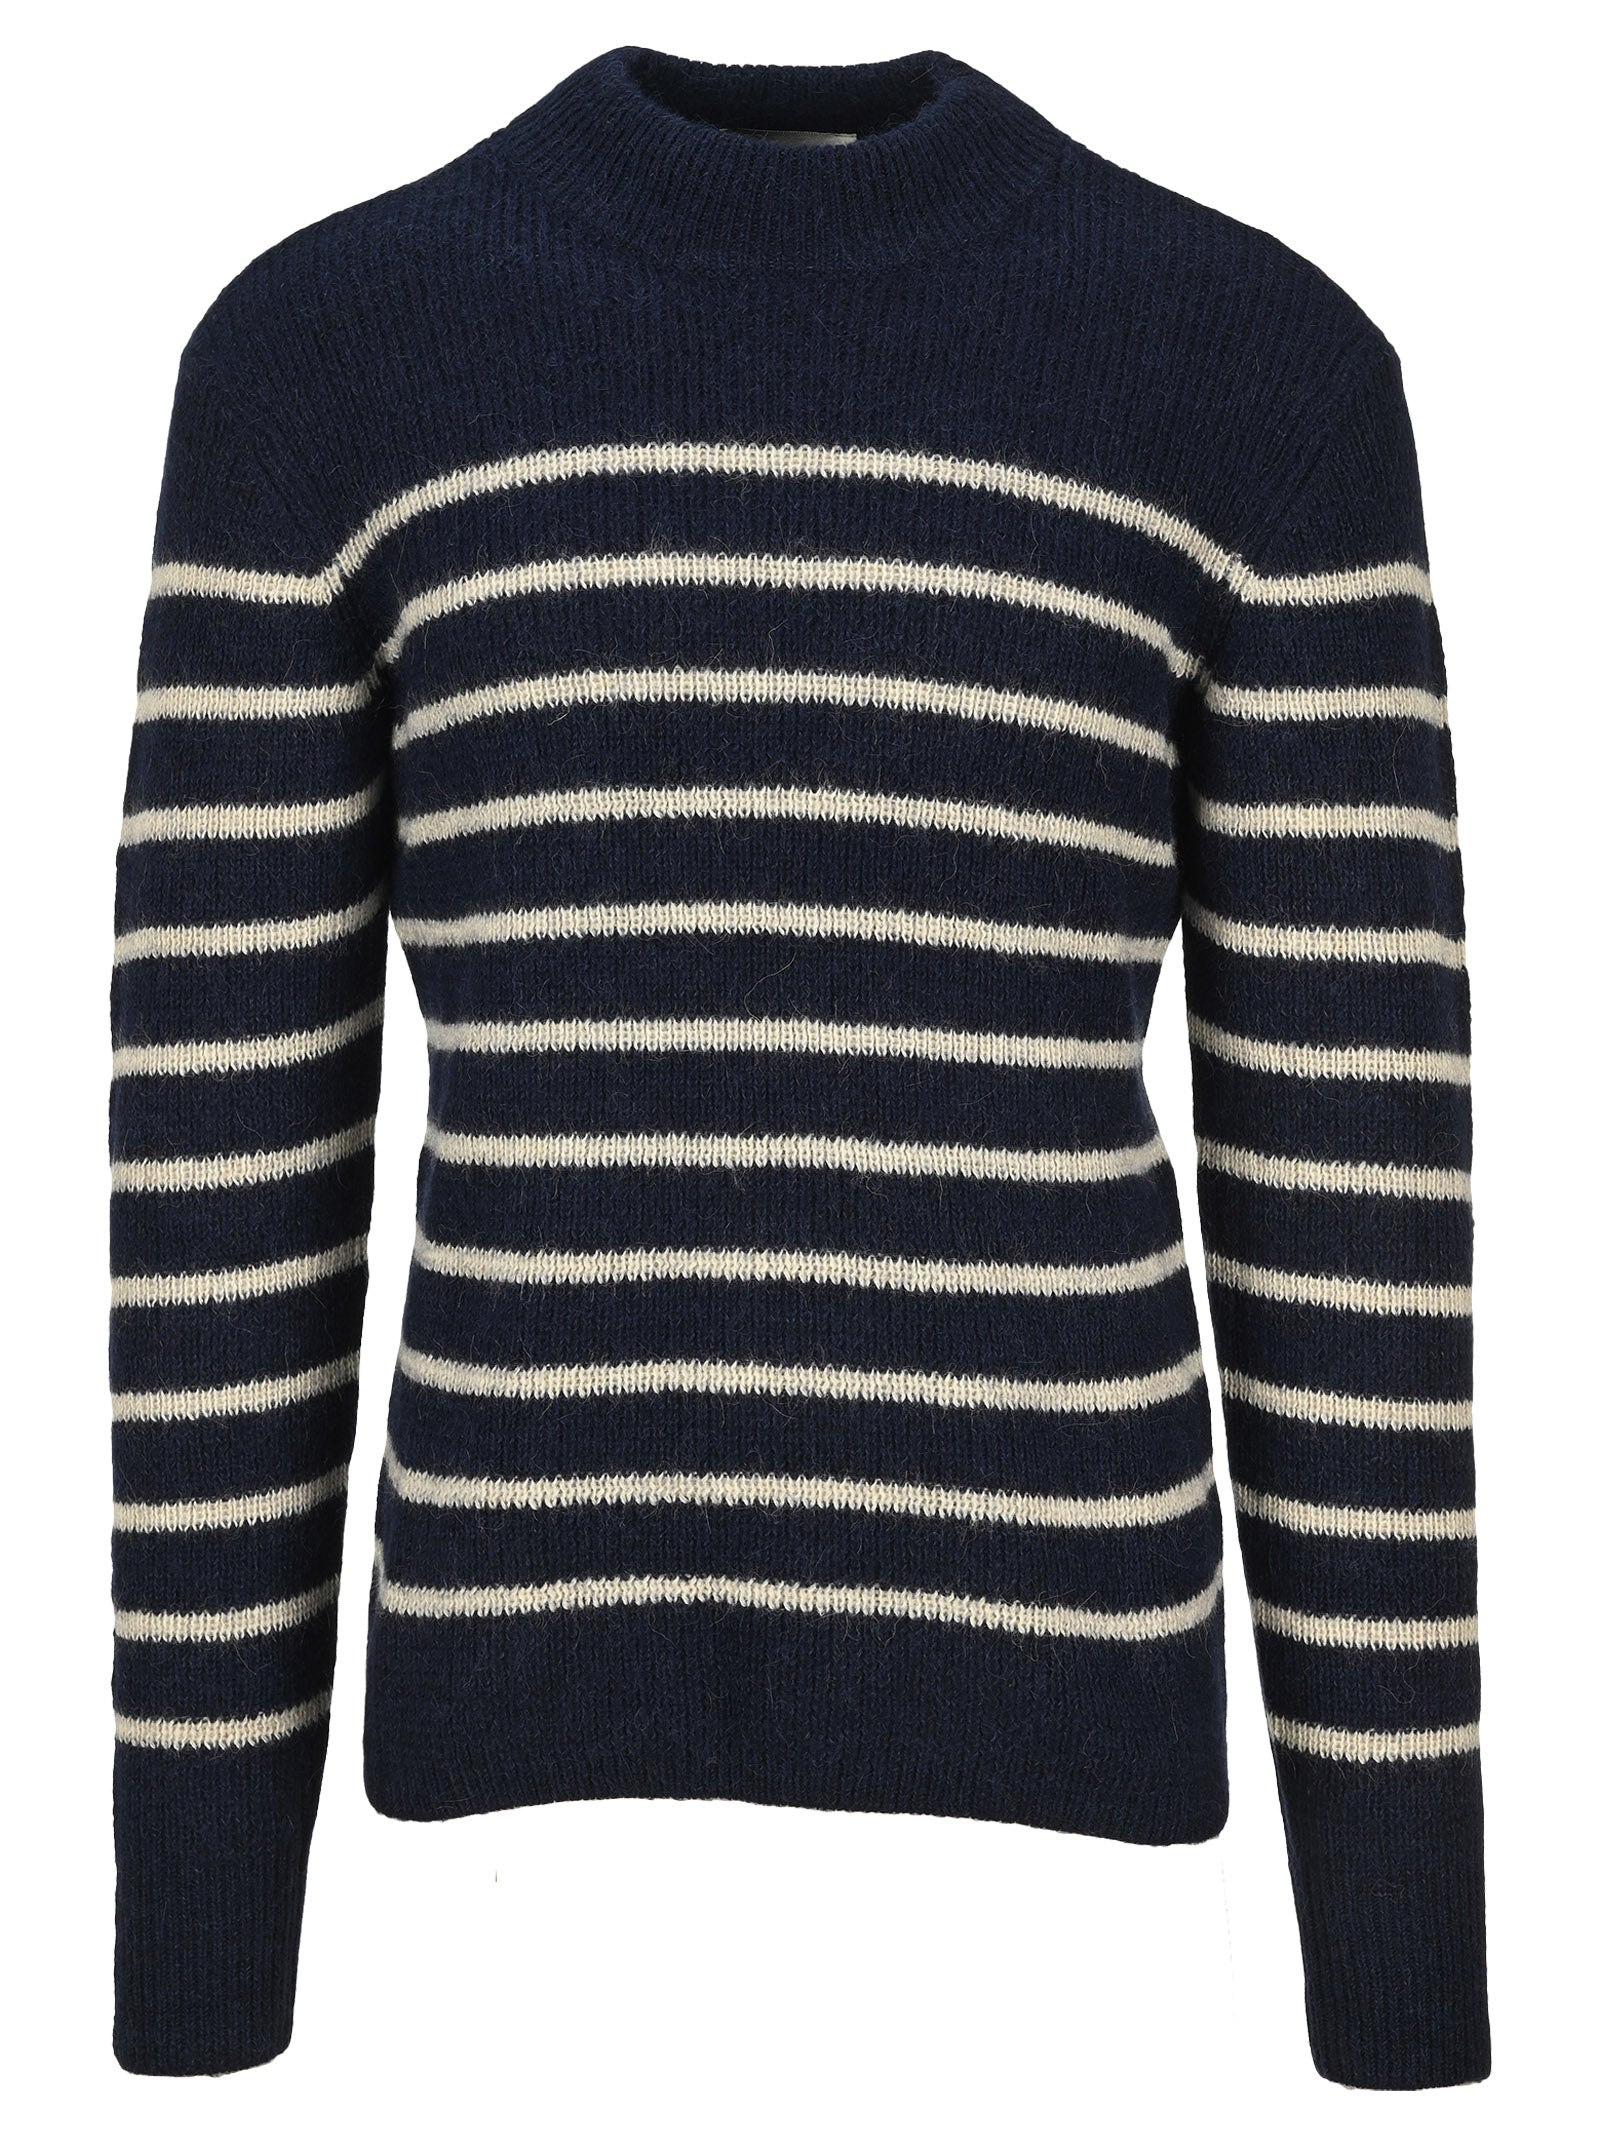 Isabel Marant ISABEL MARANT STRIPED SWEATER